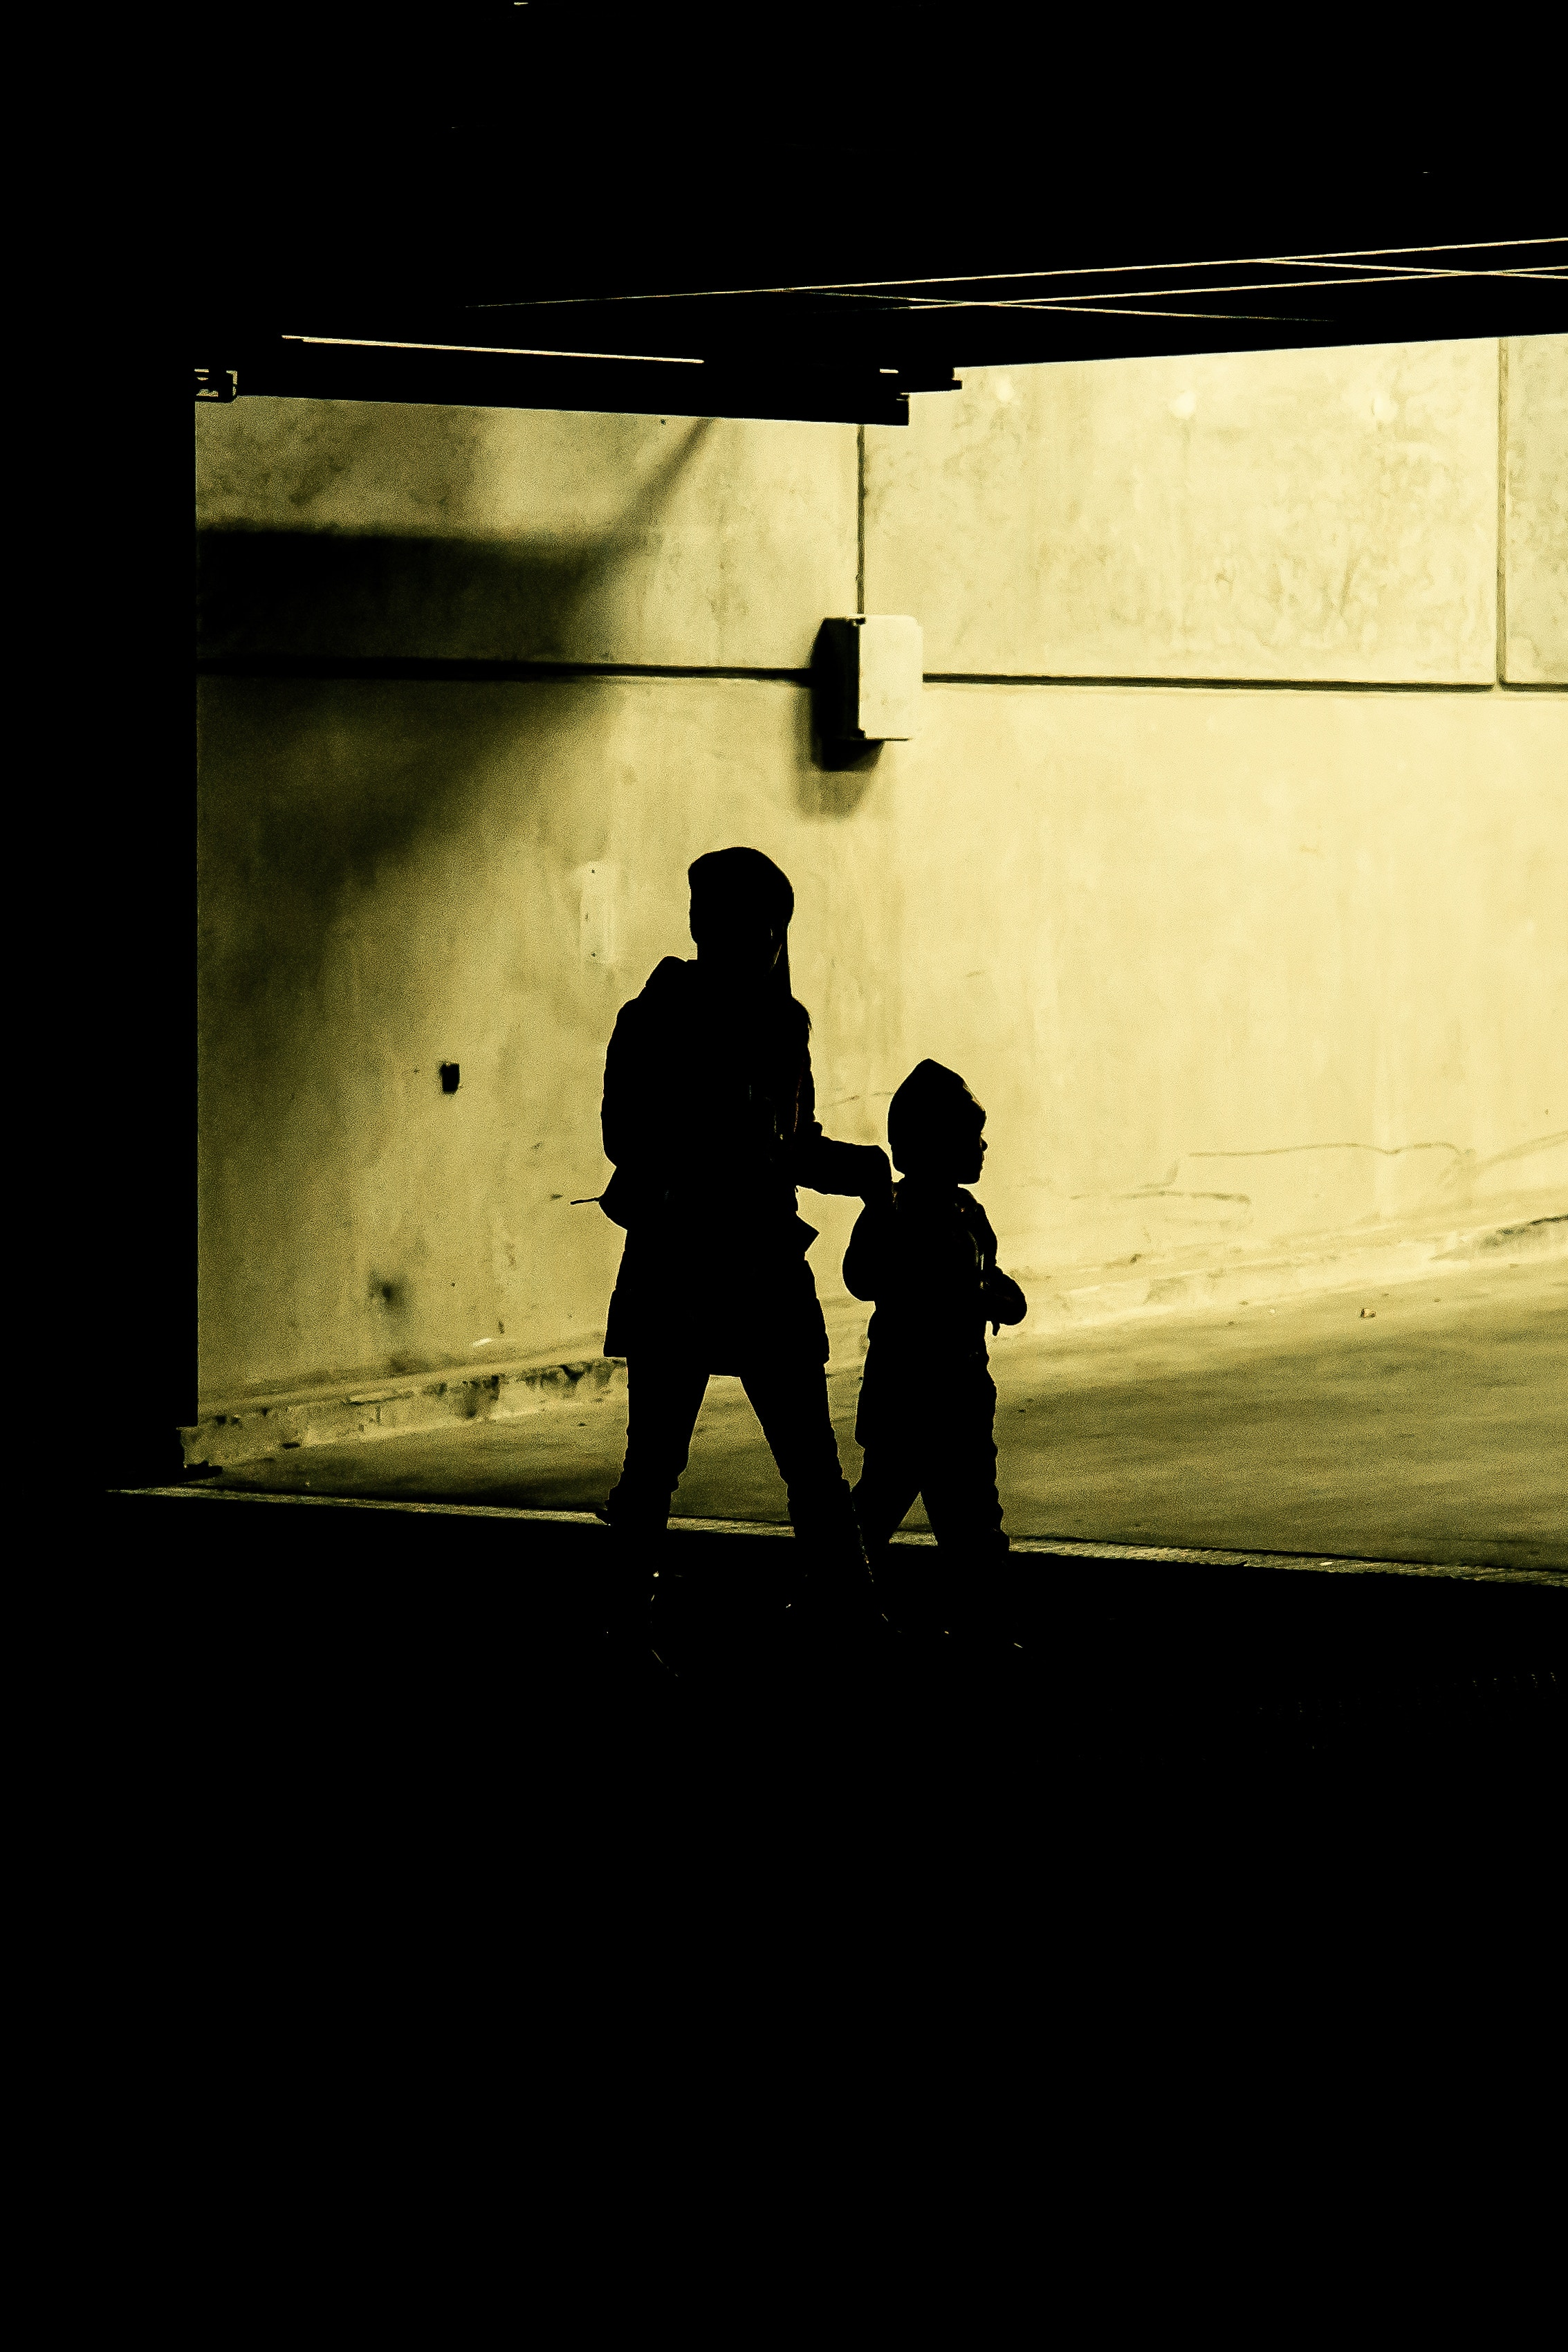 Immigration policy and how it impacts the families we serve